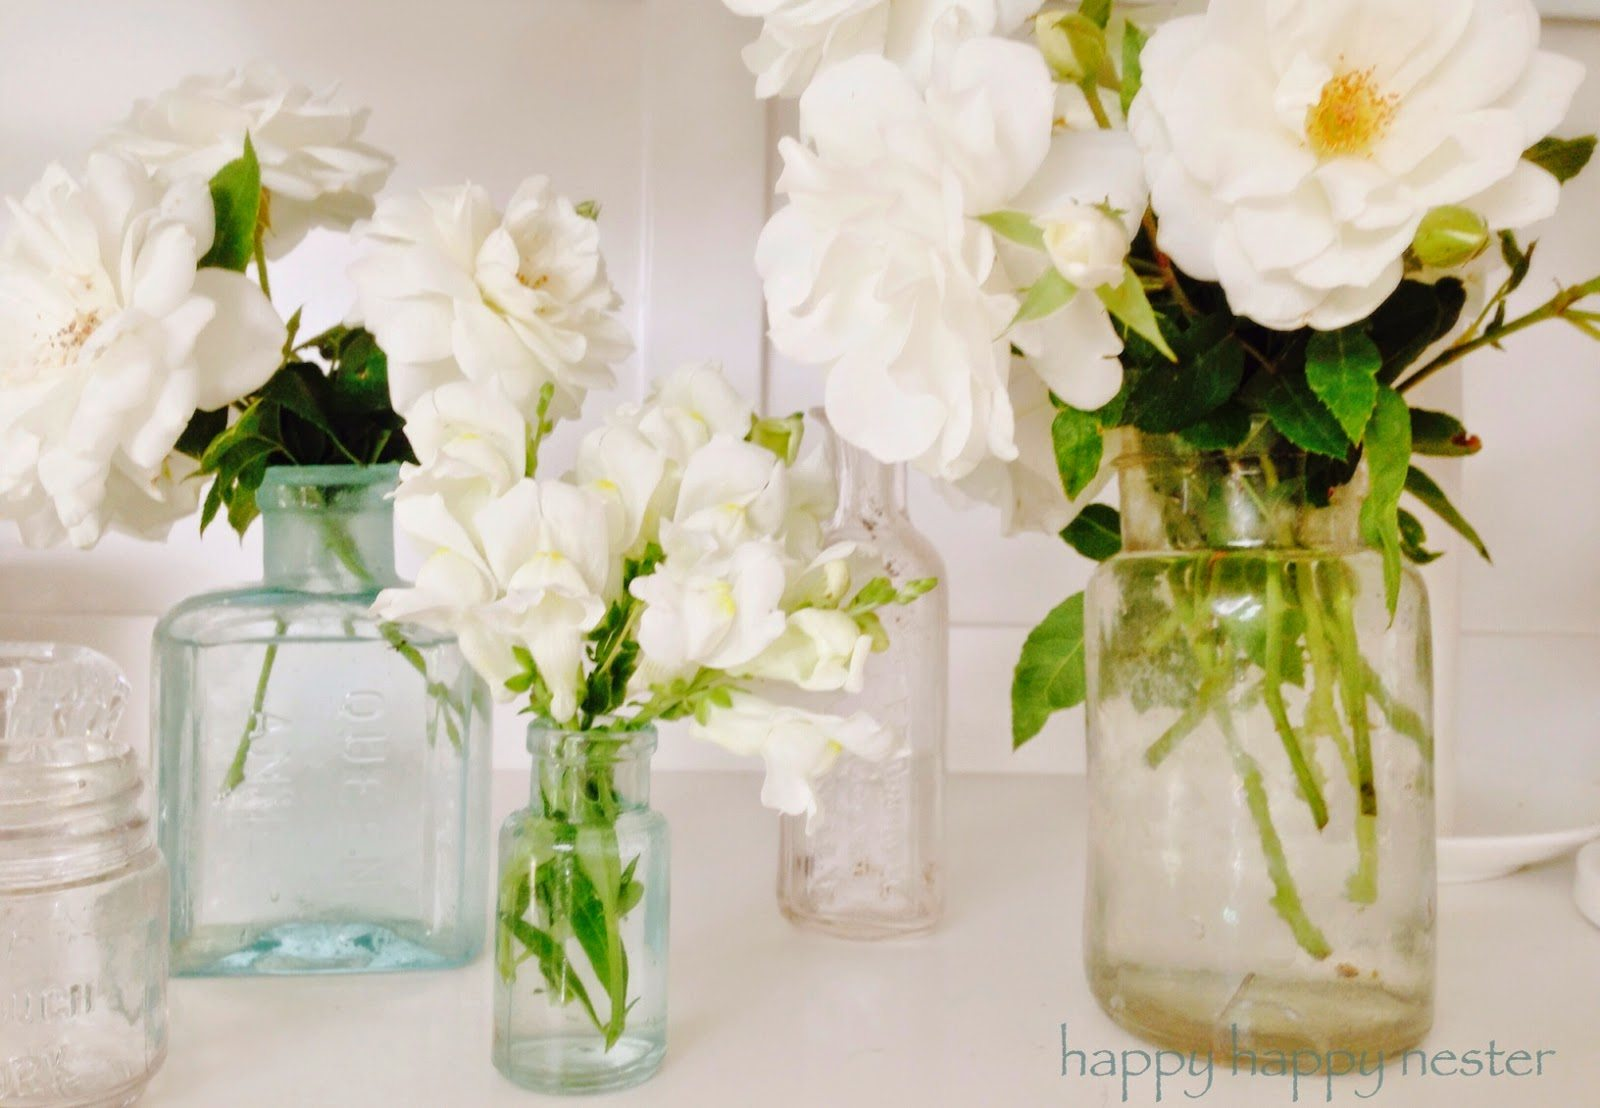 Decorating with Antique Bottles